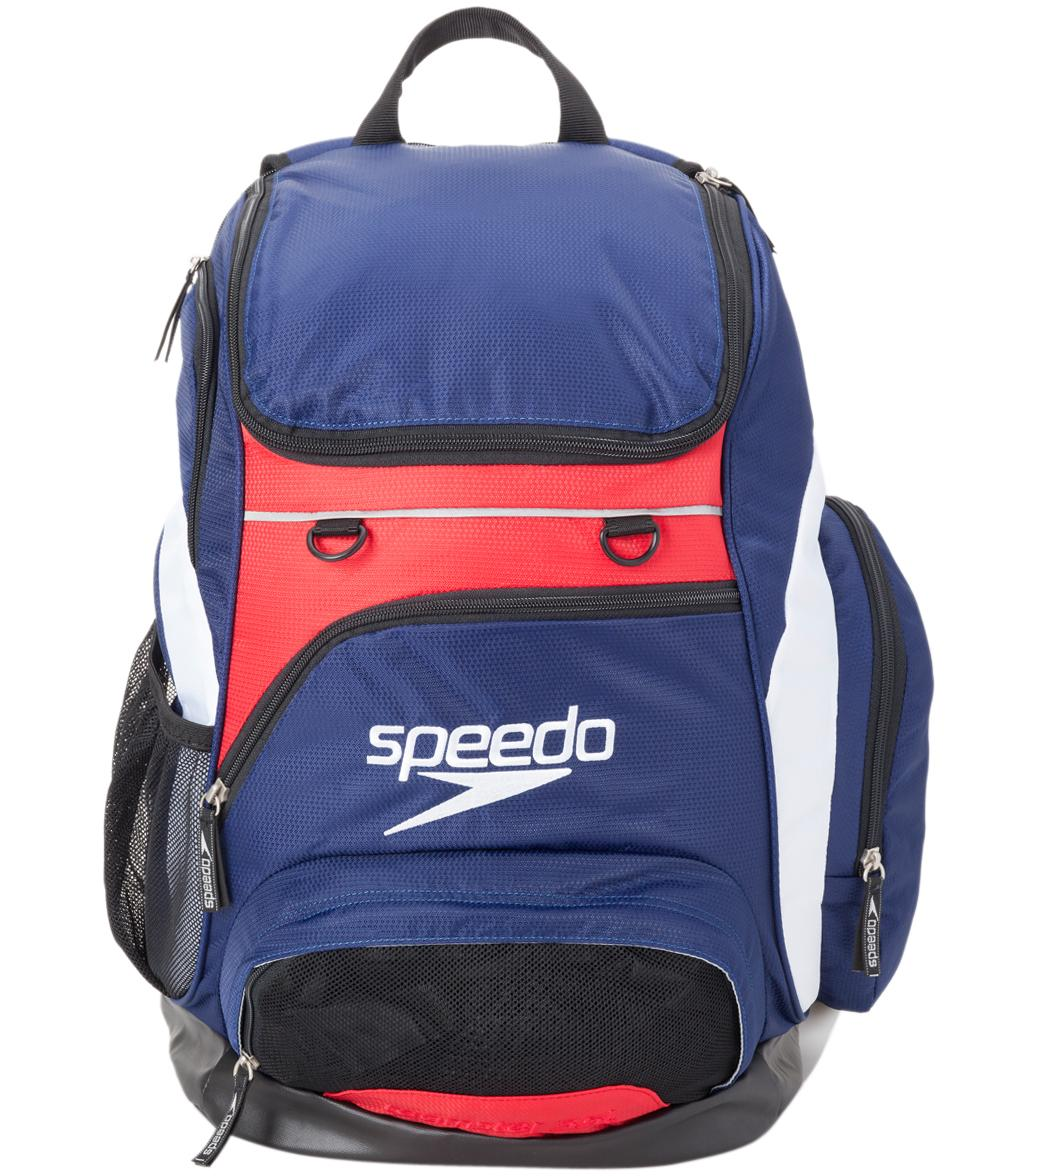 Etapa Por lo tanto mucho  Speedo Large 35L Teamster Backpack at SwimOutlet.com - Free Shipping